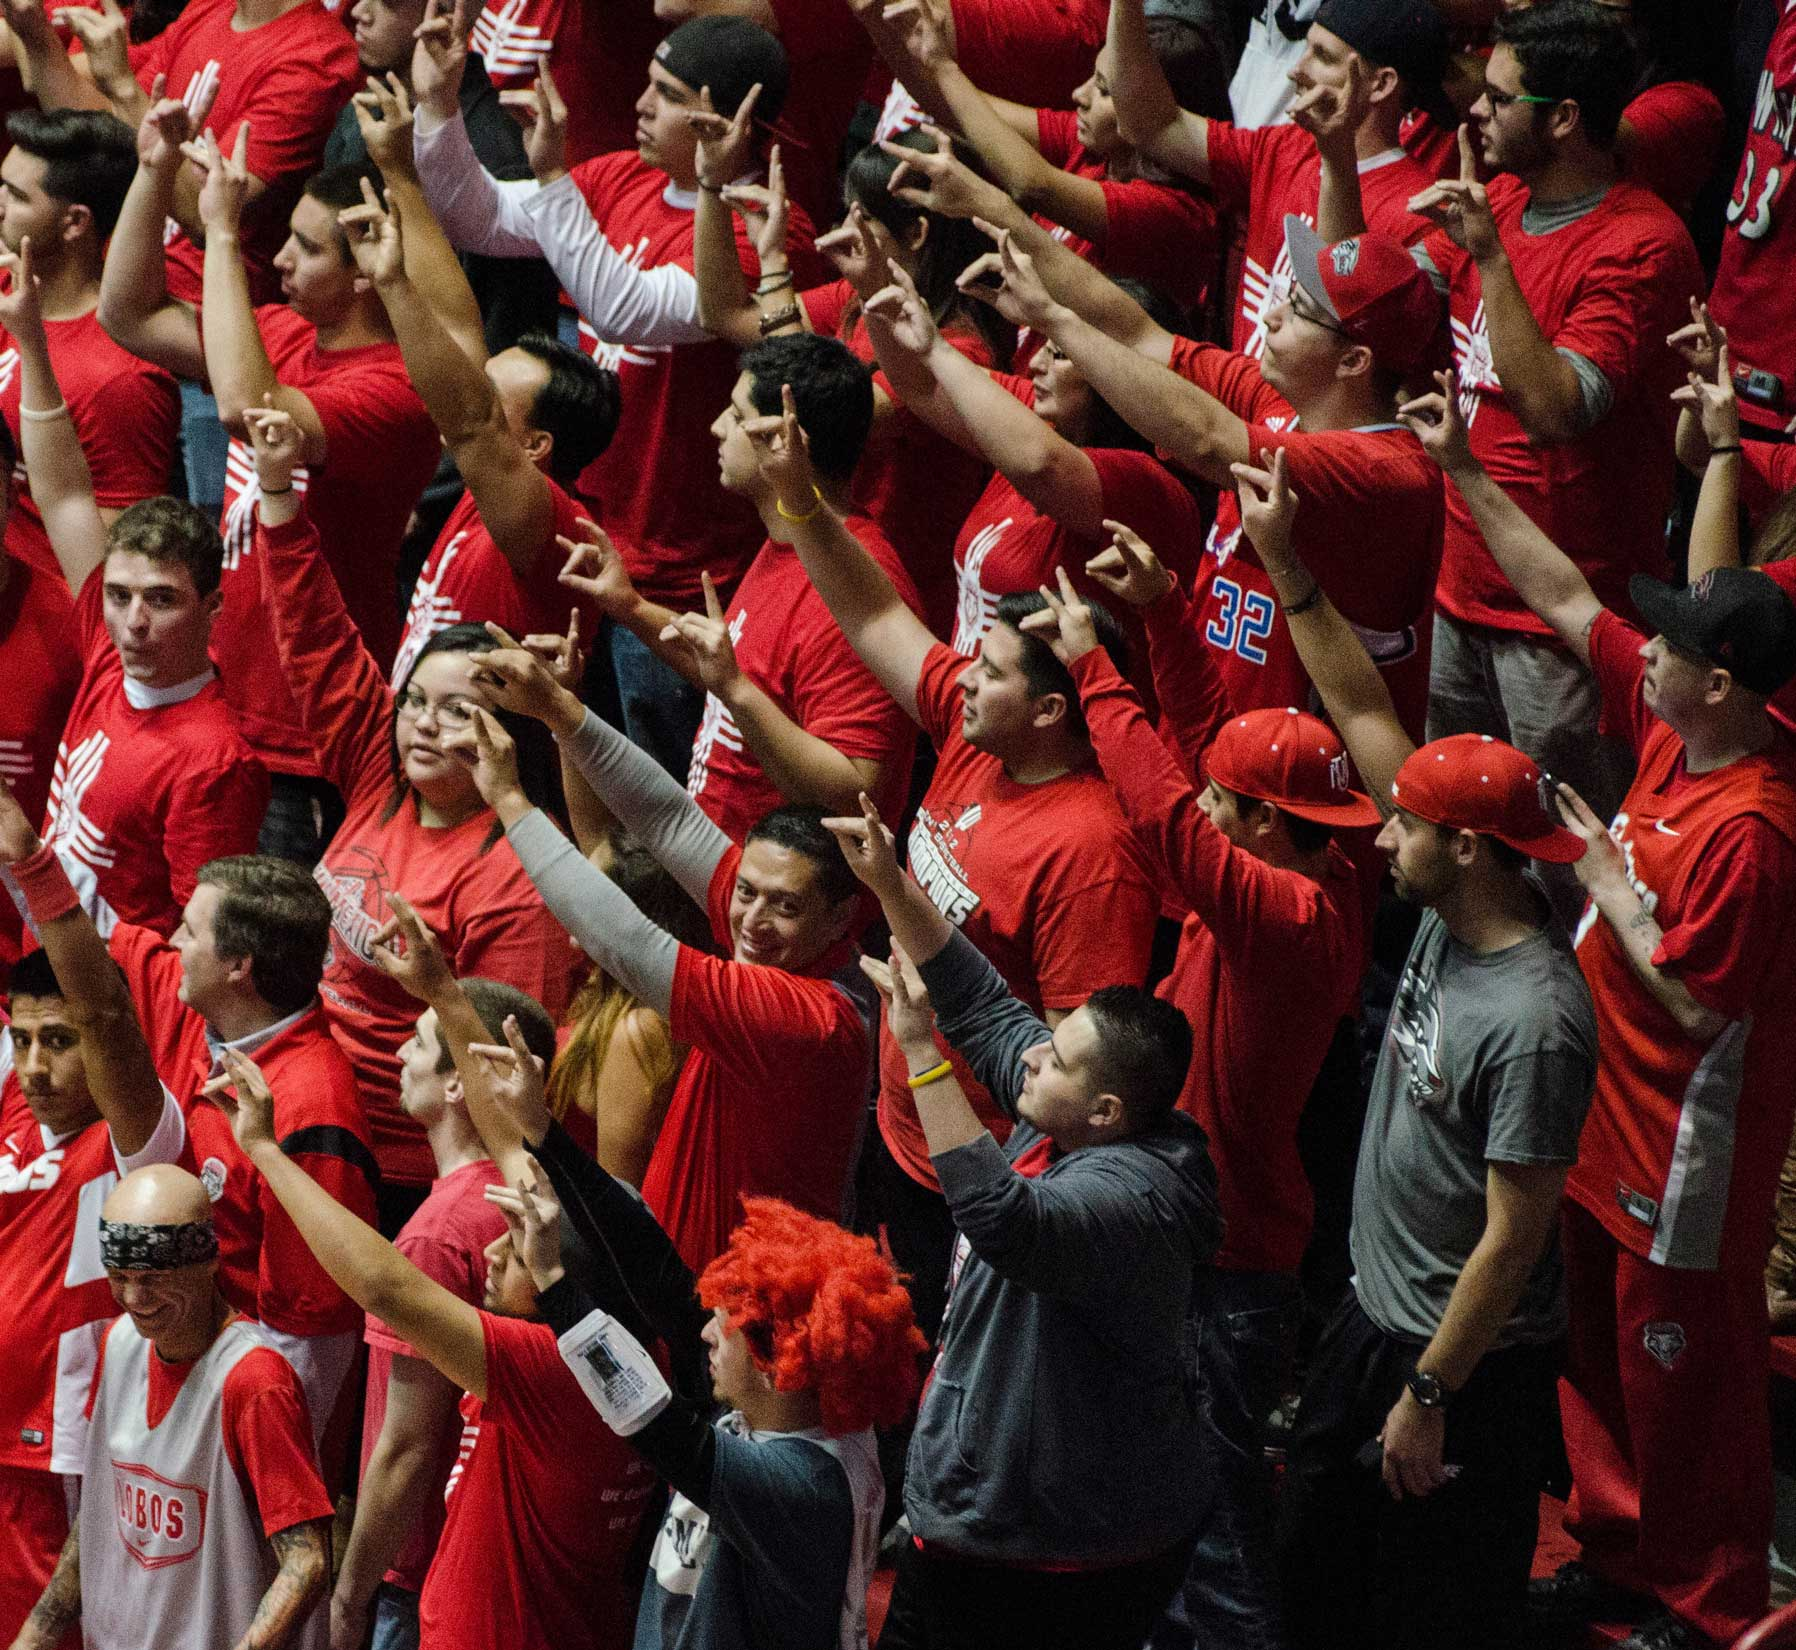 UNM Students cheering at The Pit